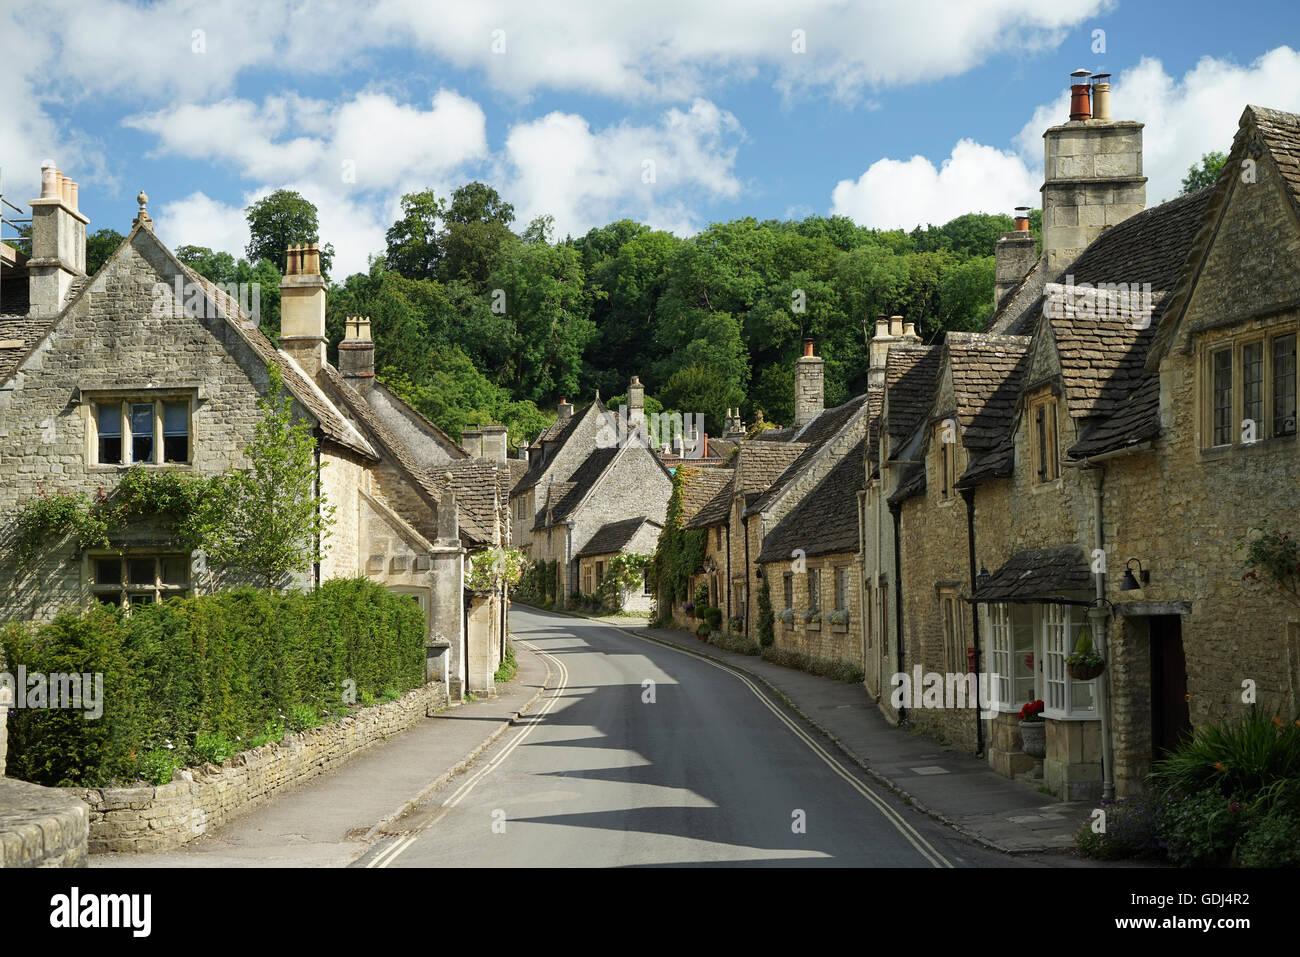 The Street, Castle Combe, Wiltshire -2 - Stock Image